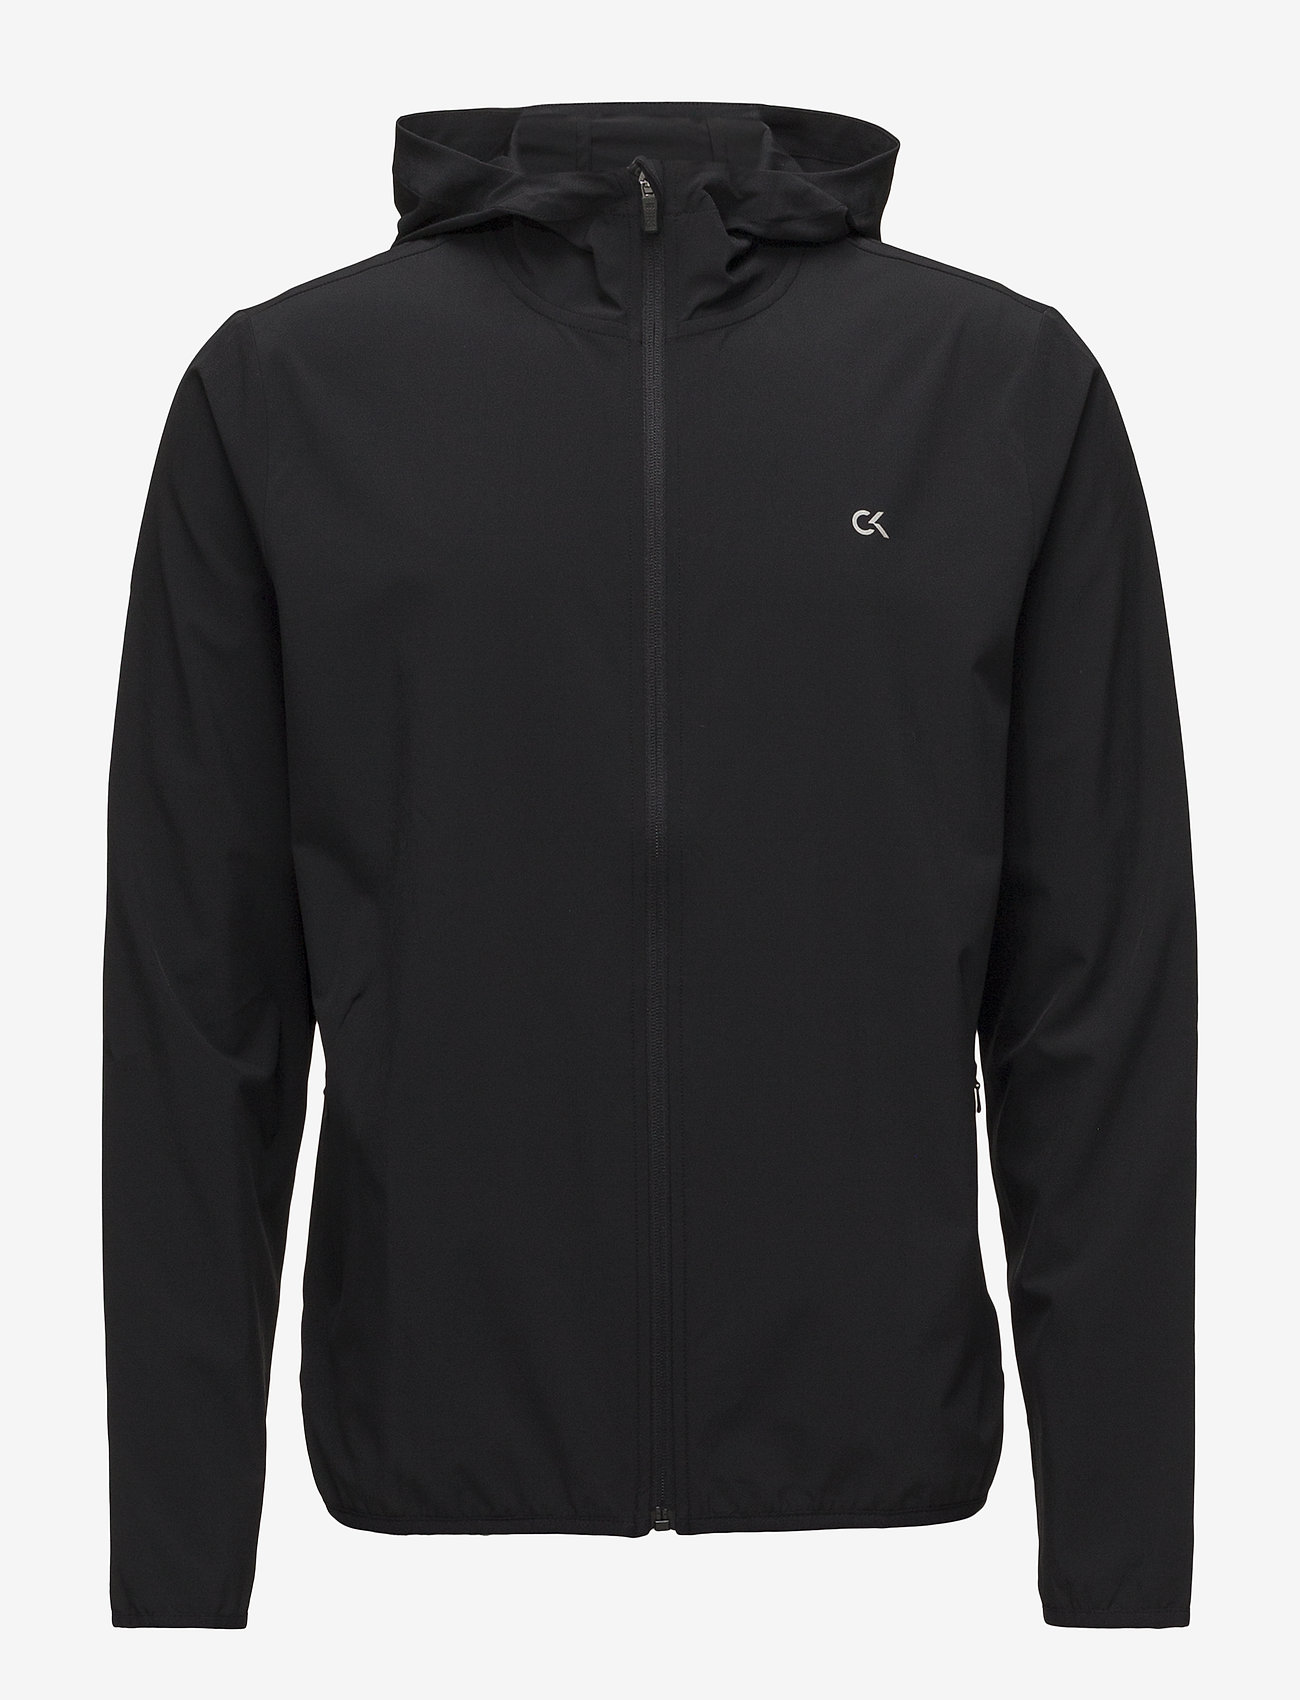 Calvin Klein Performance - WIND JACKET - sports jackets - ck black - 1